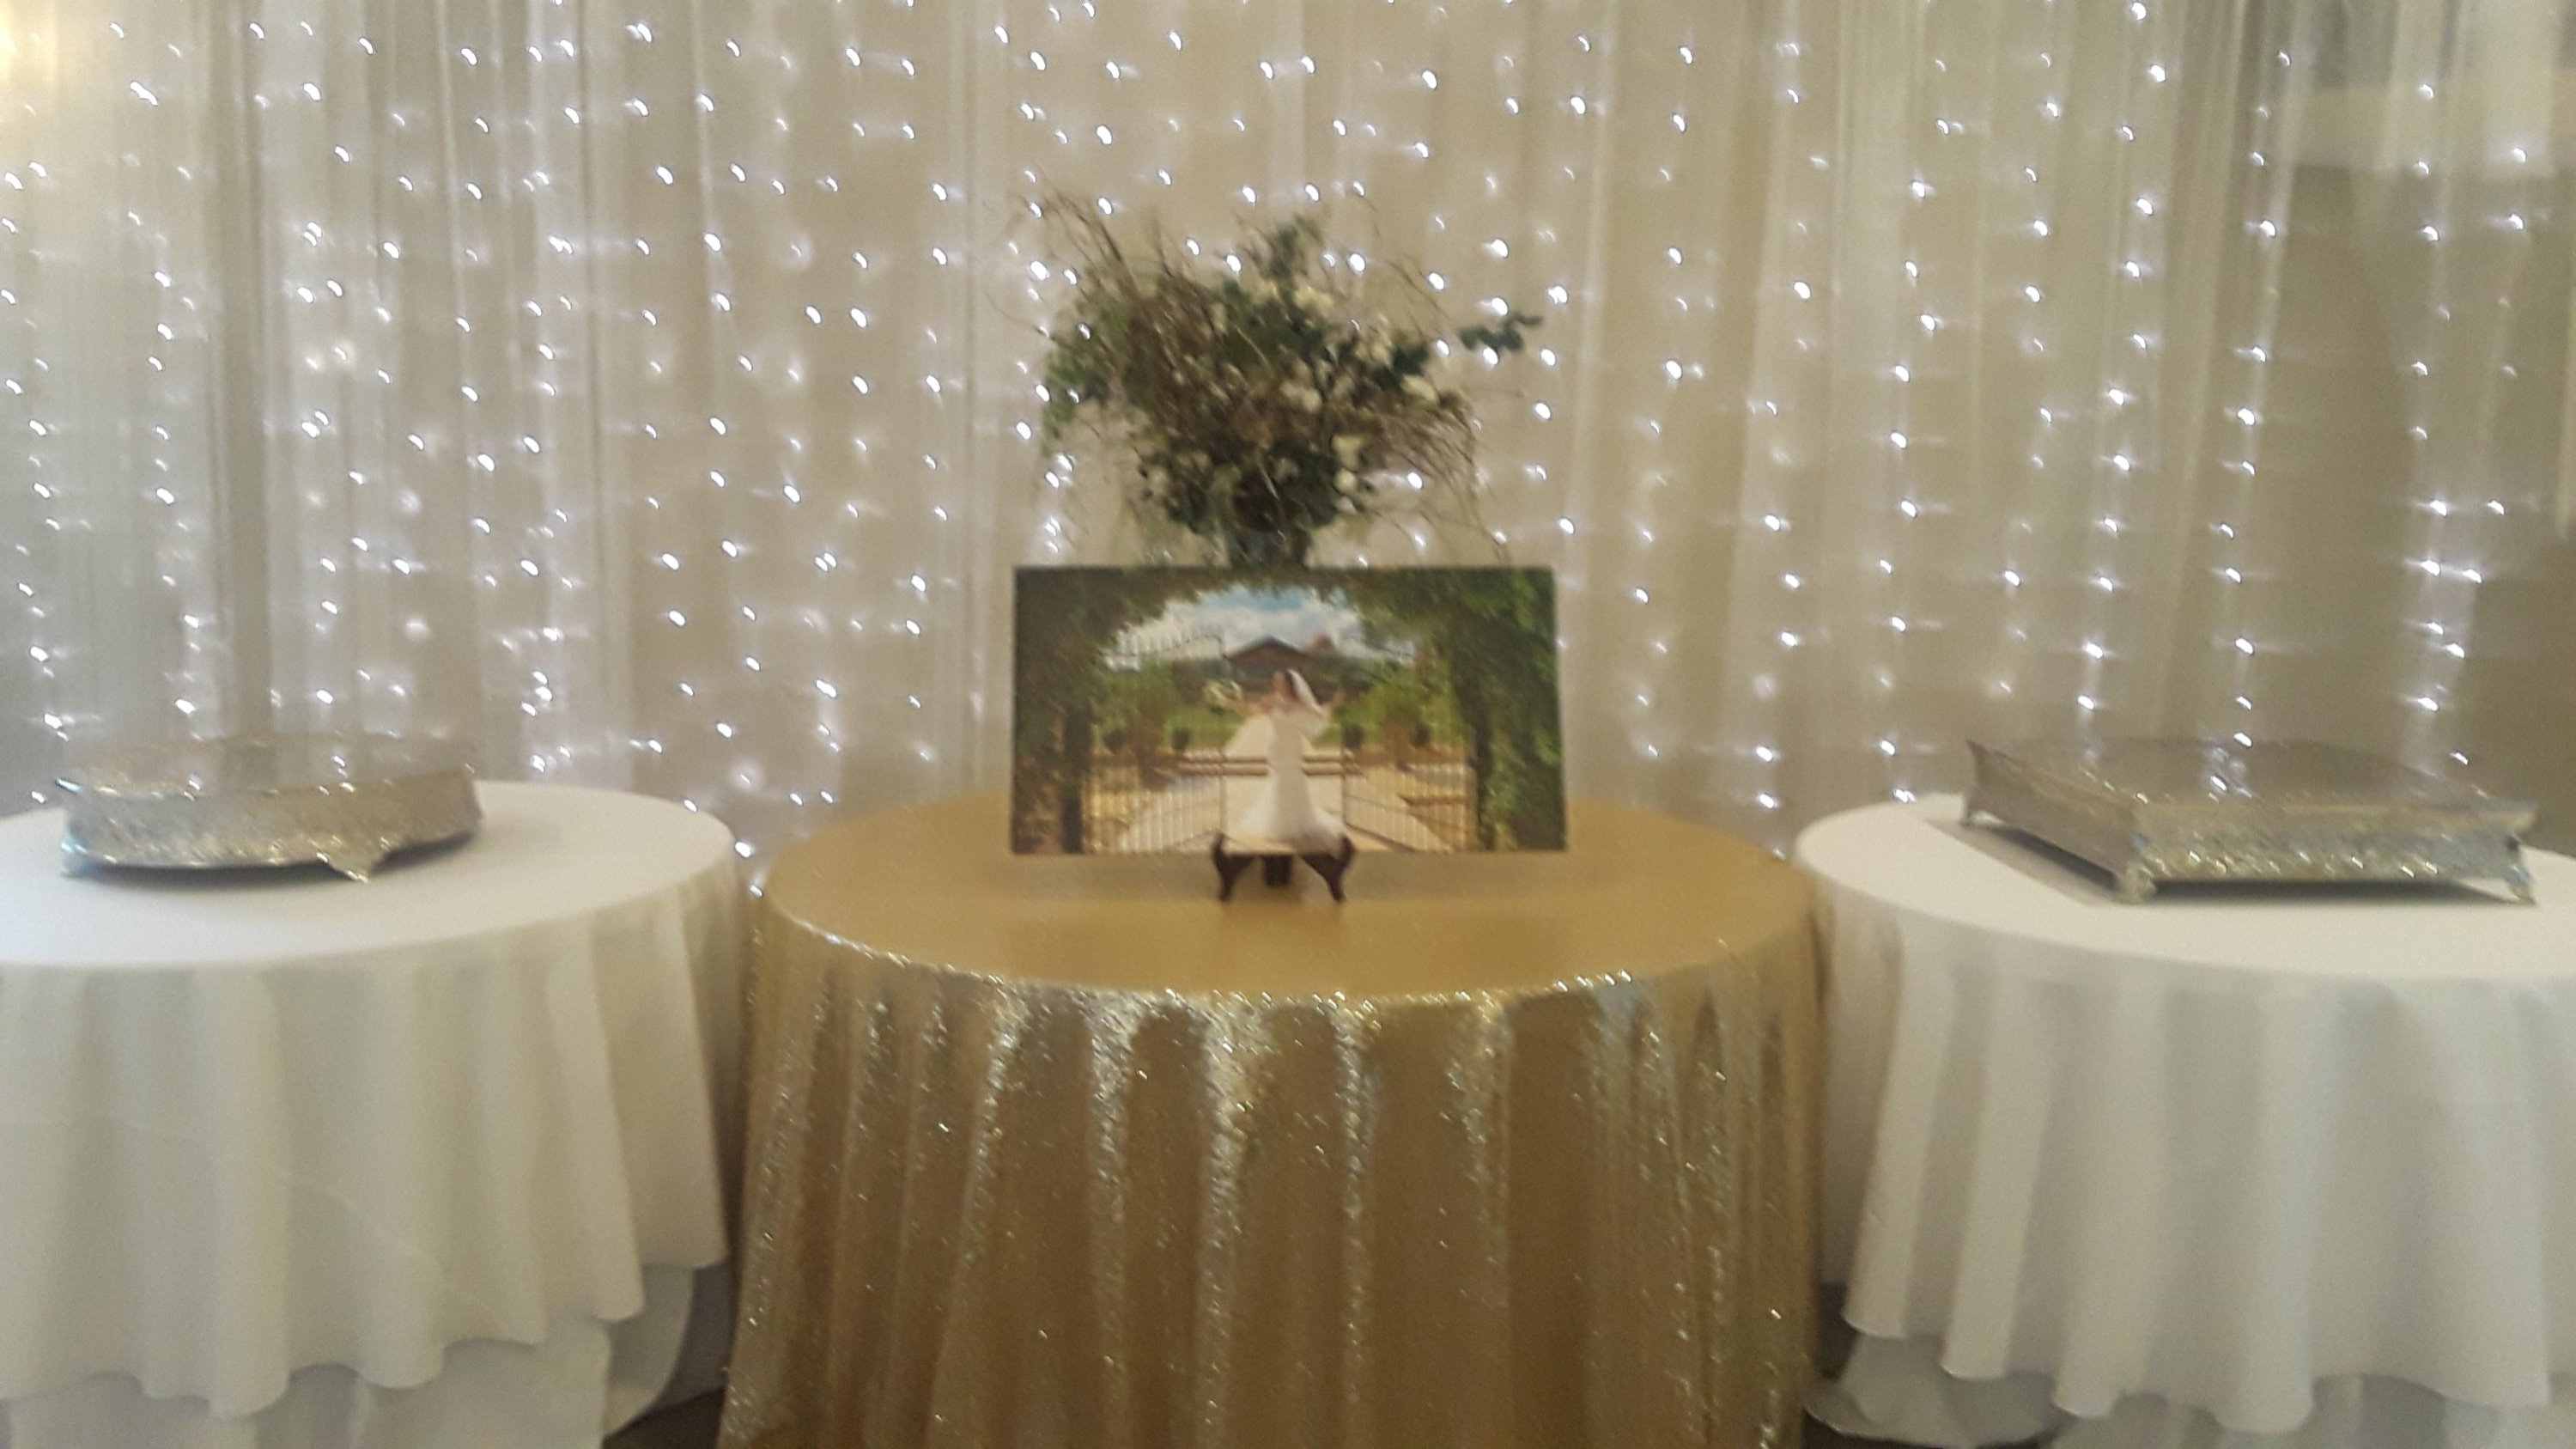 cake table, lighting, decor, banquet facility, outdoor wedding